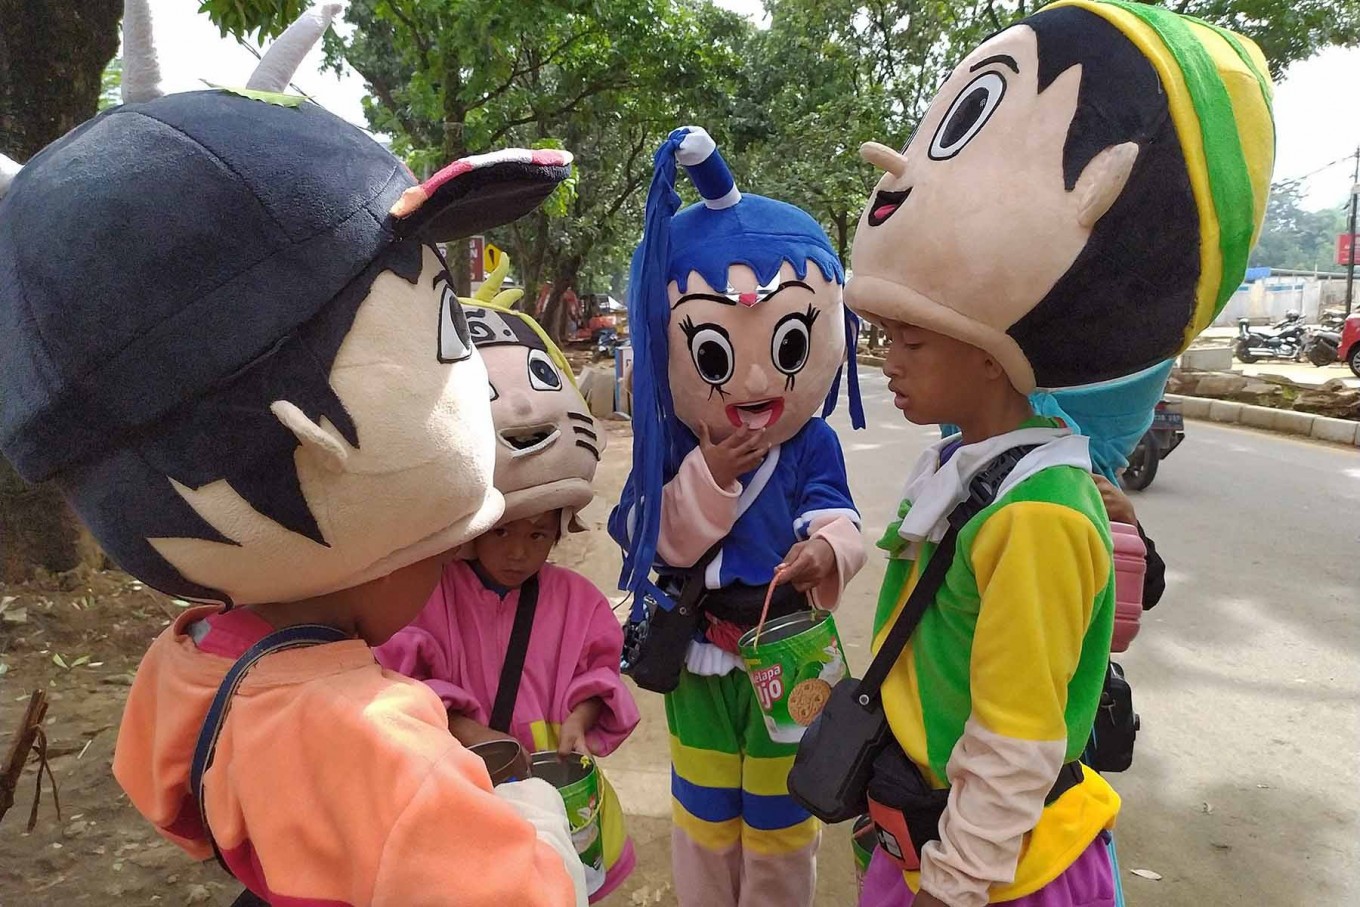 Children wearing costumes of various cartoon characters work as street singers to collect money from passersby in Cibinong, Bogor regency, West Java, on Dec. 14. They said they went out busking after attending their online classes. JP/P.J. Leo